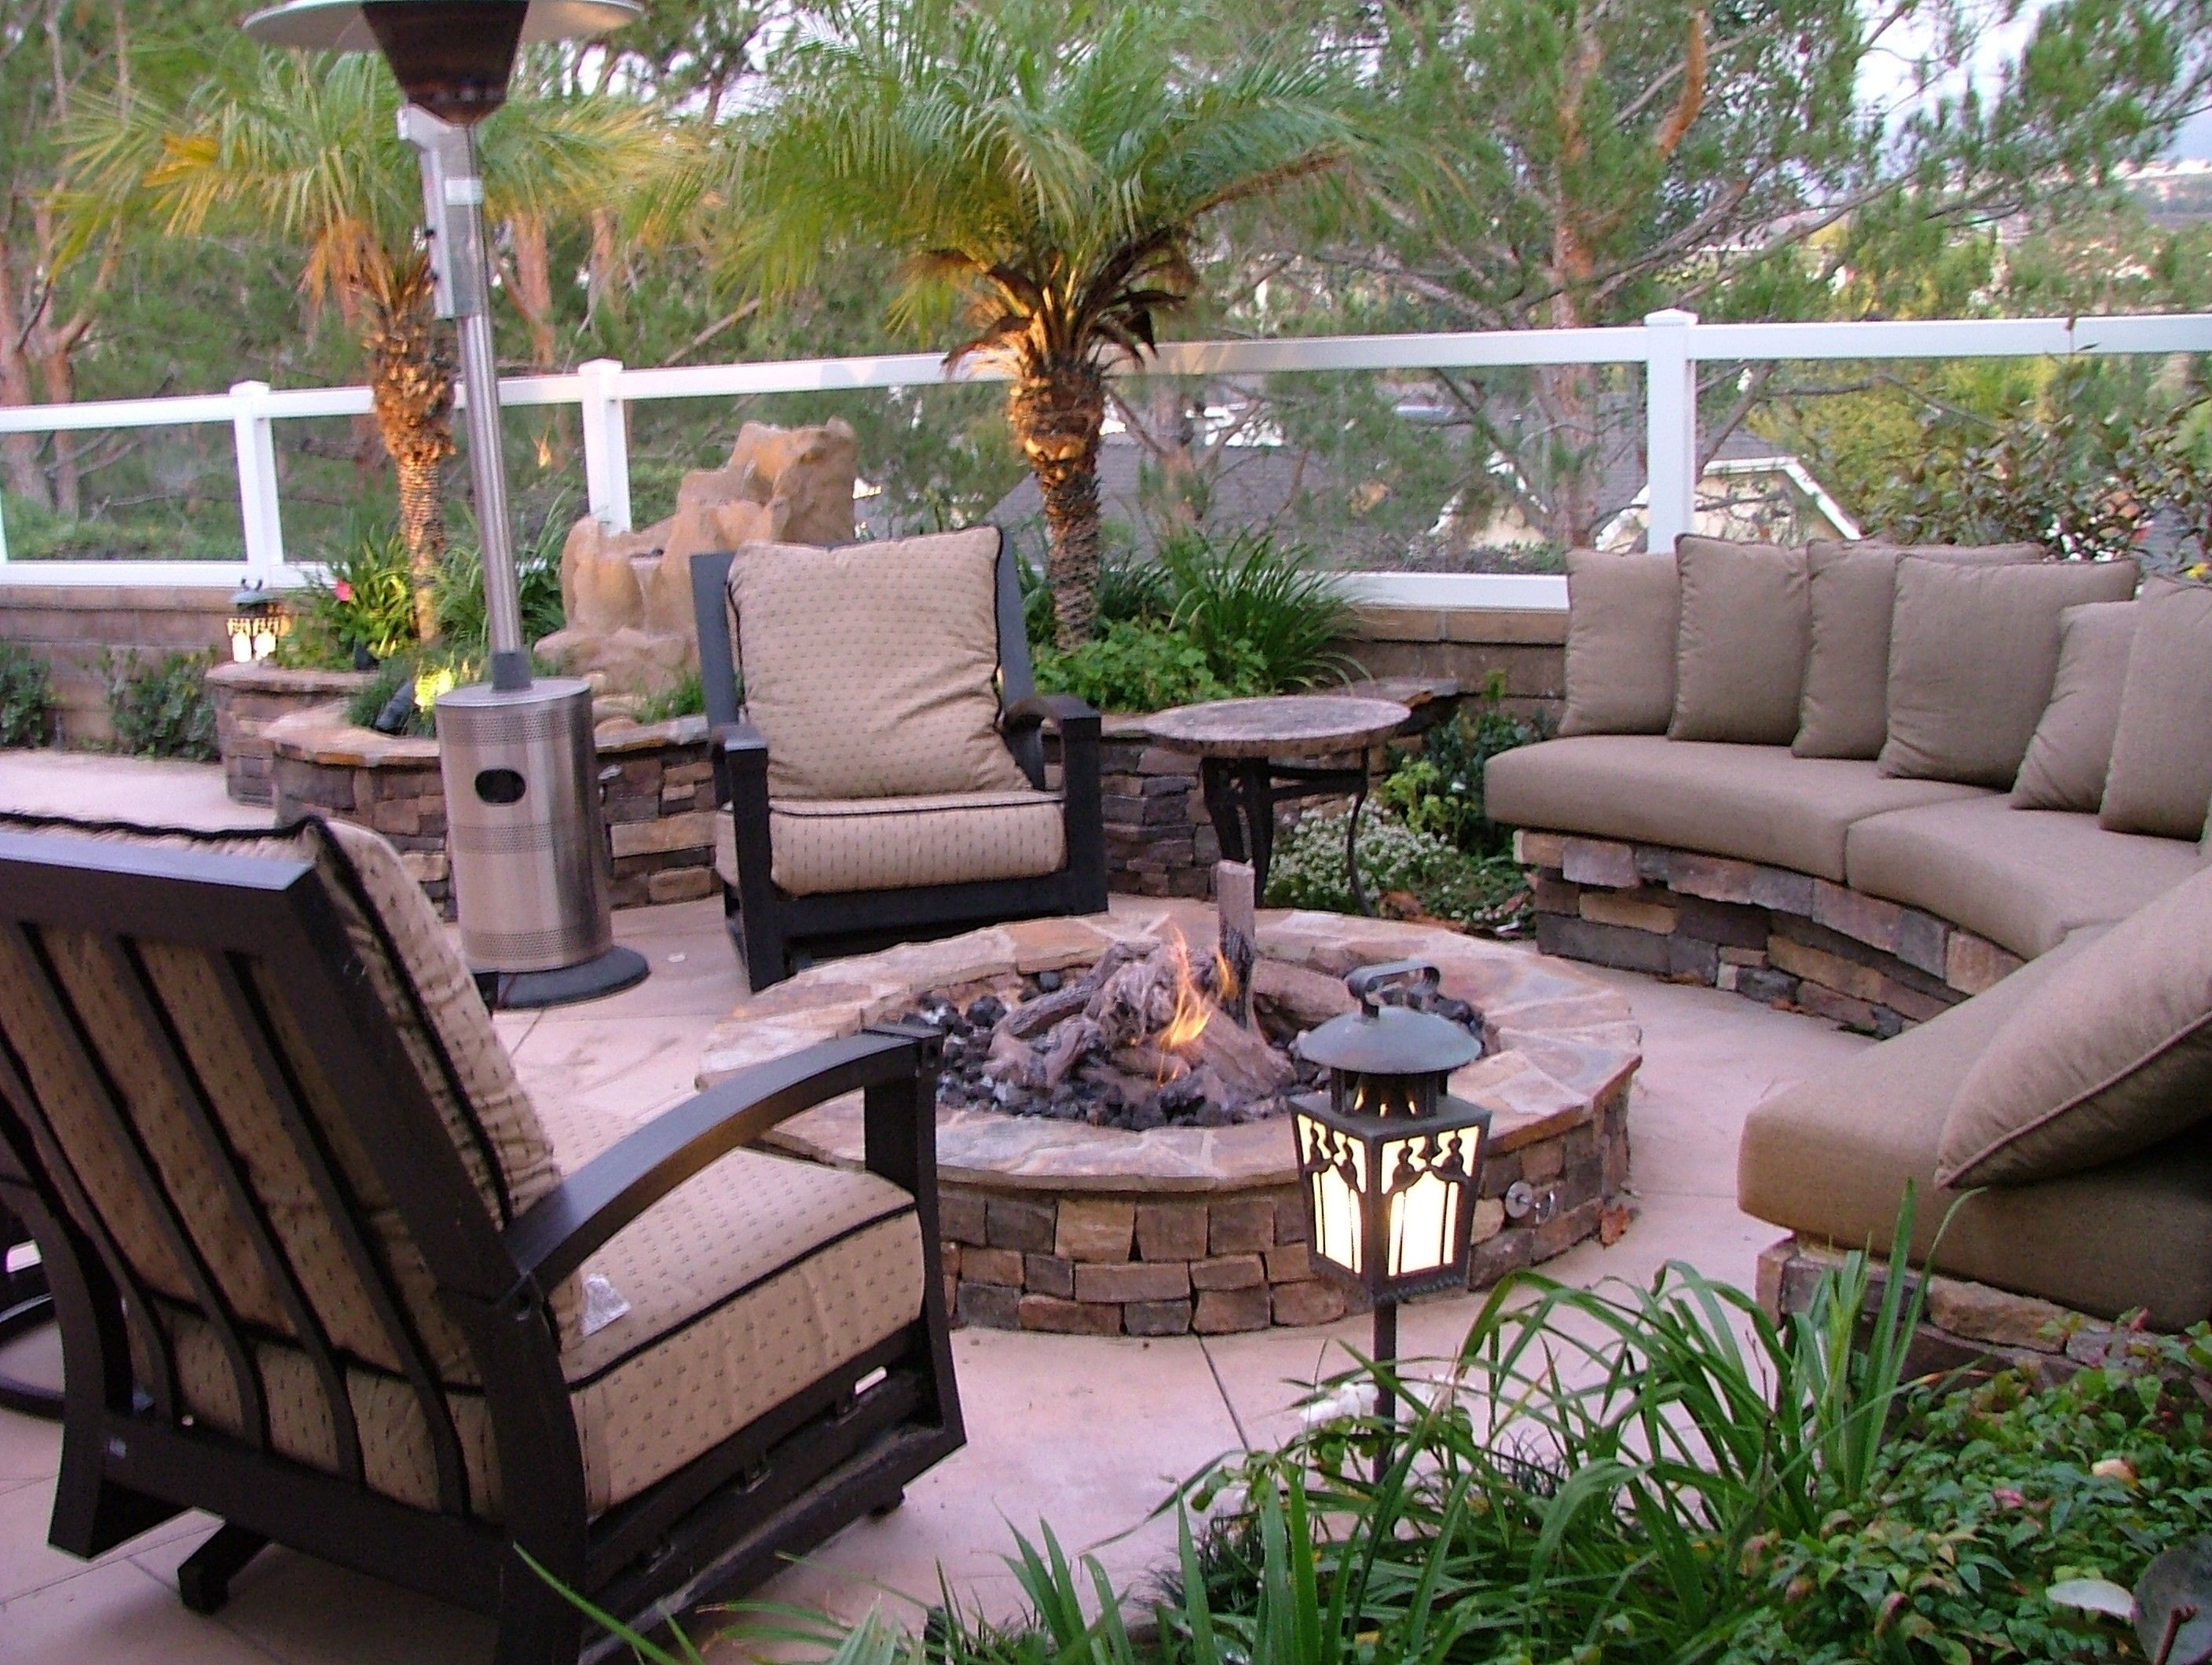 exterior home outdoor fire pit design ideas home fire pit diy - Patio Design Ideas With Fire Pits